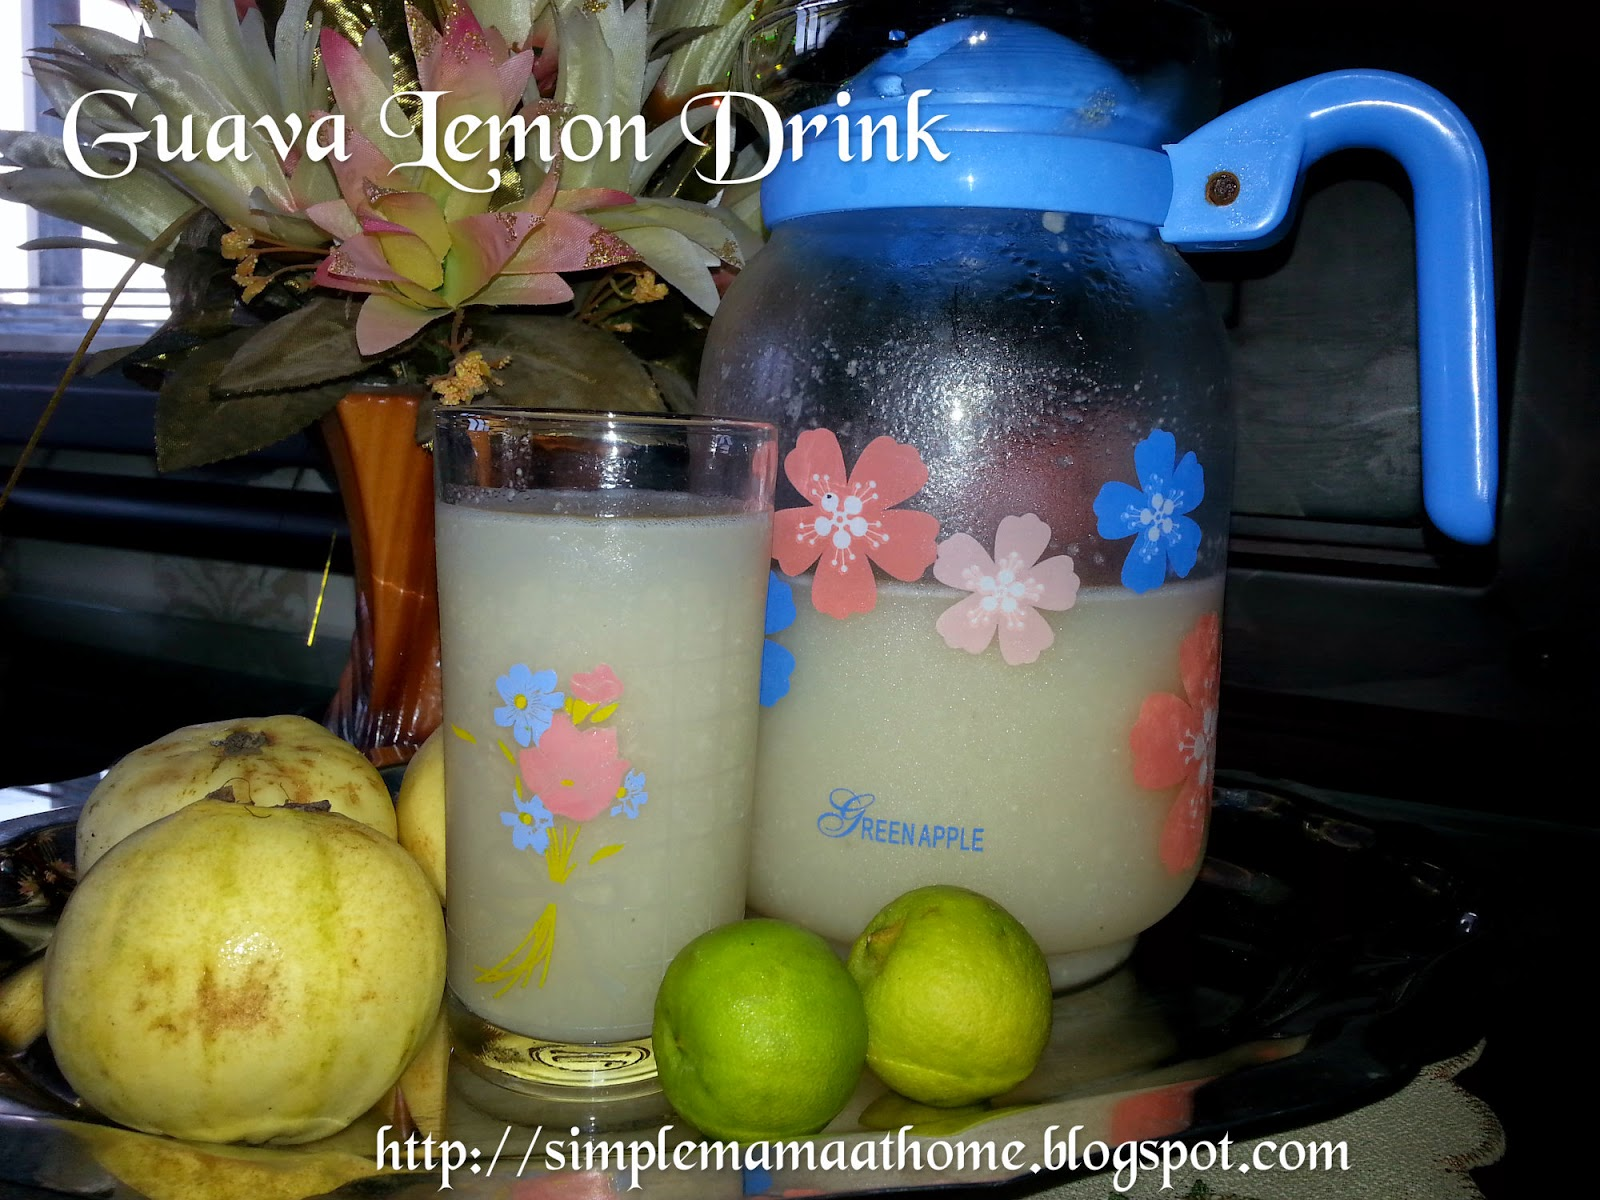 Guava Lemon Drink